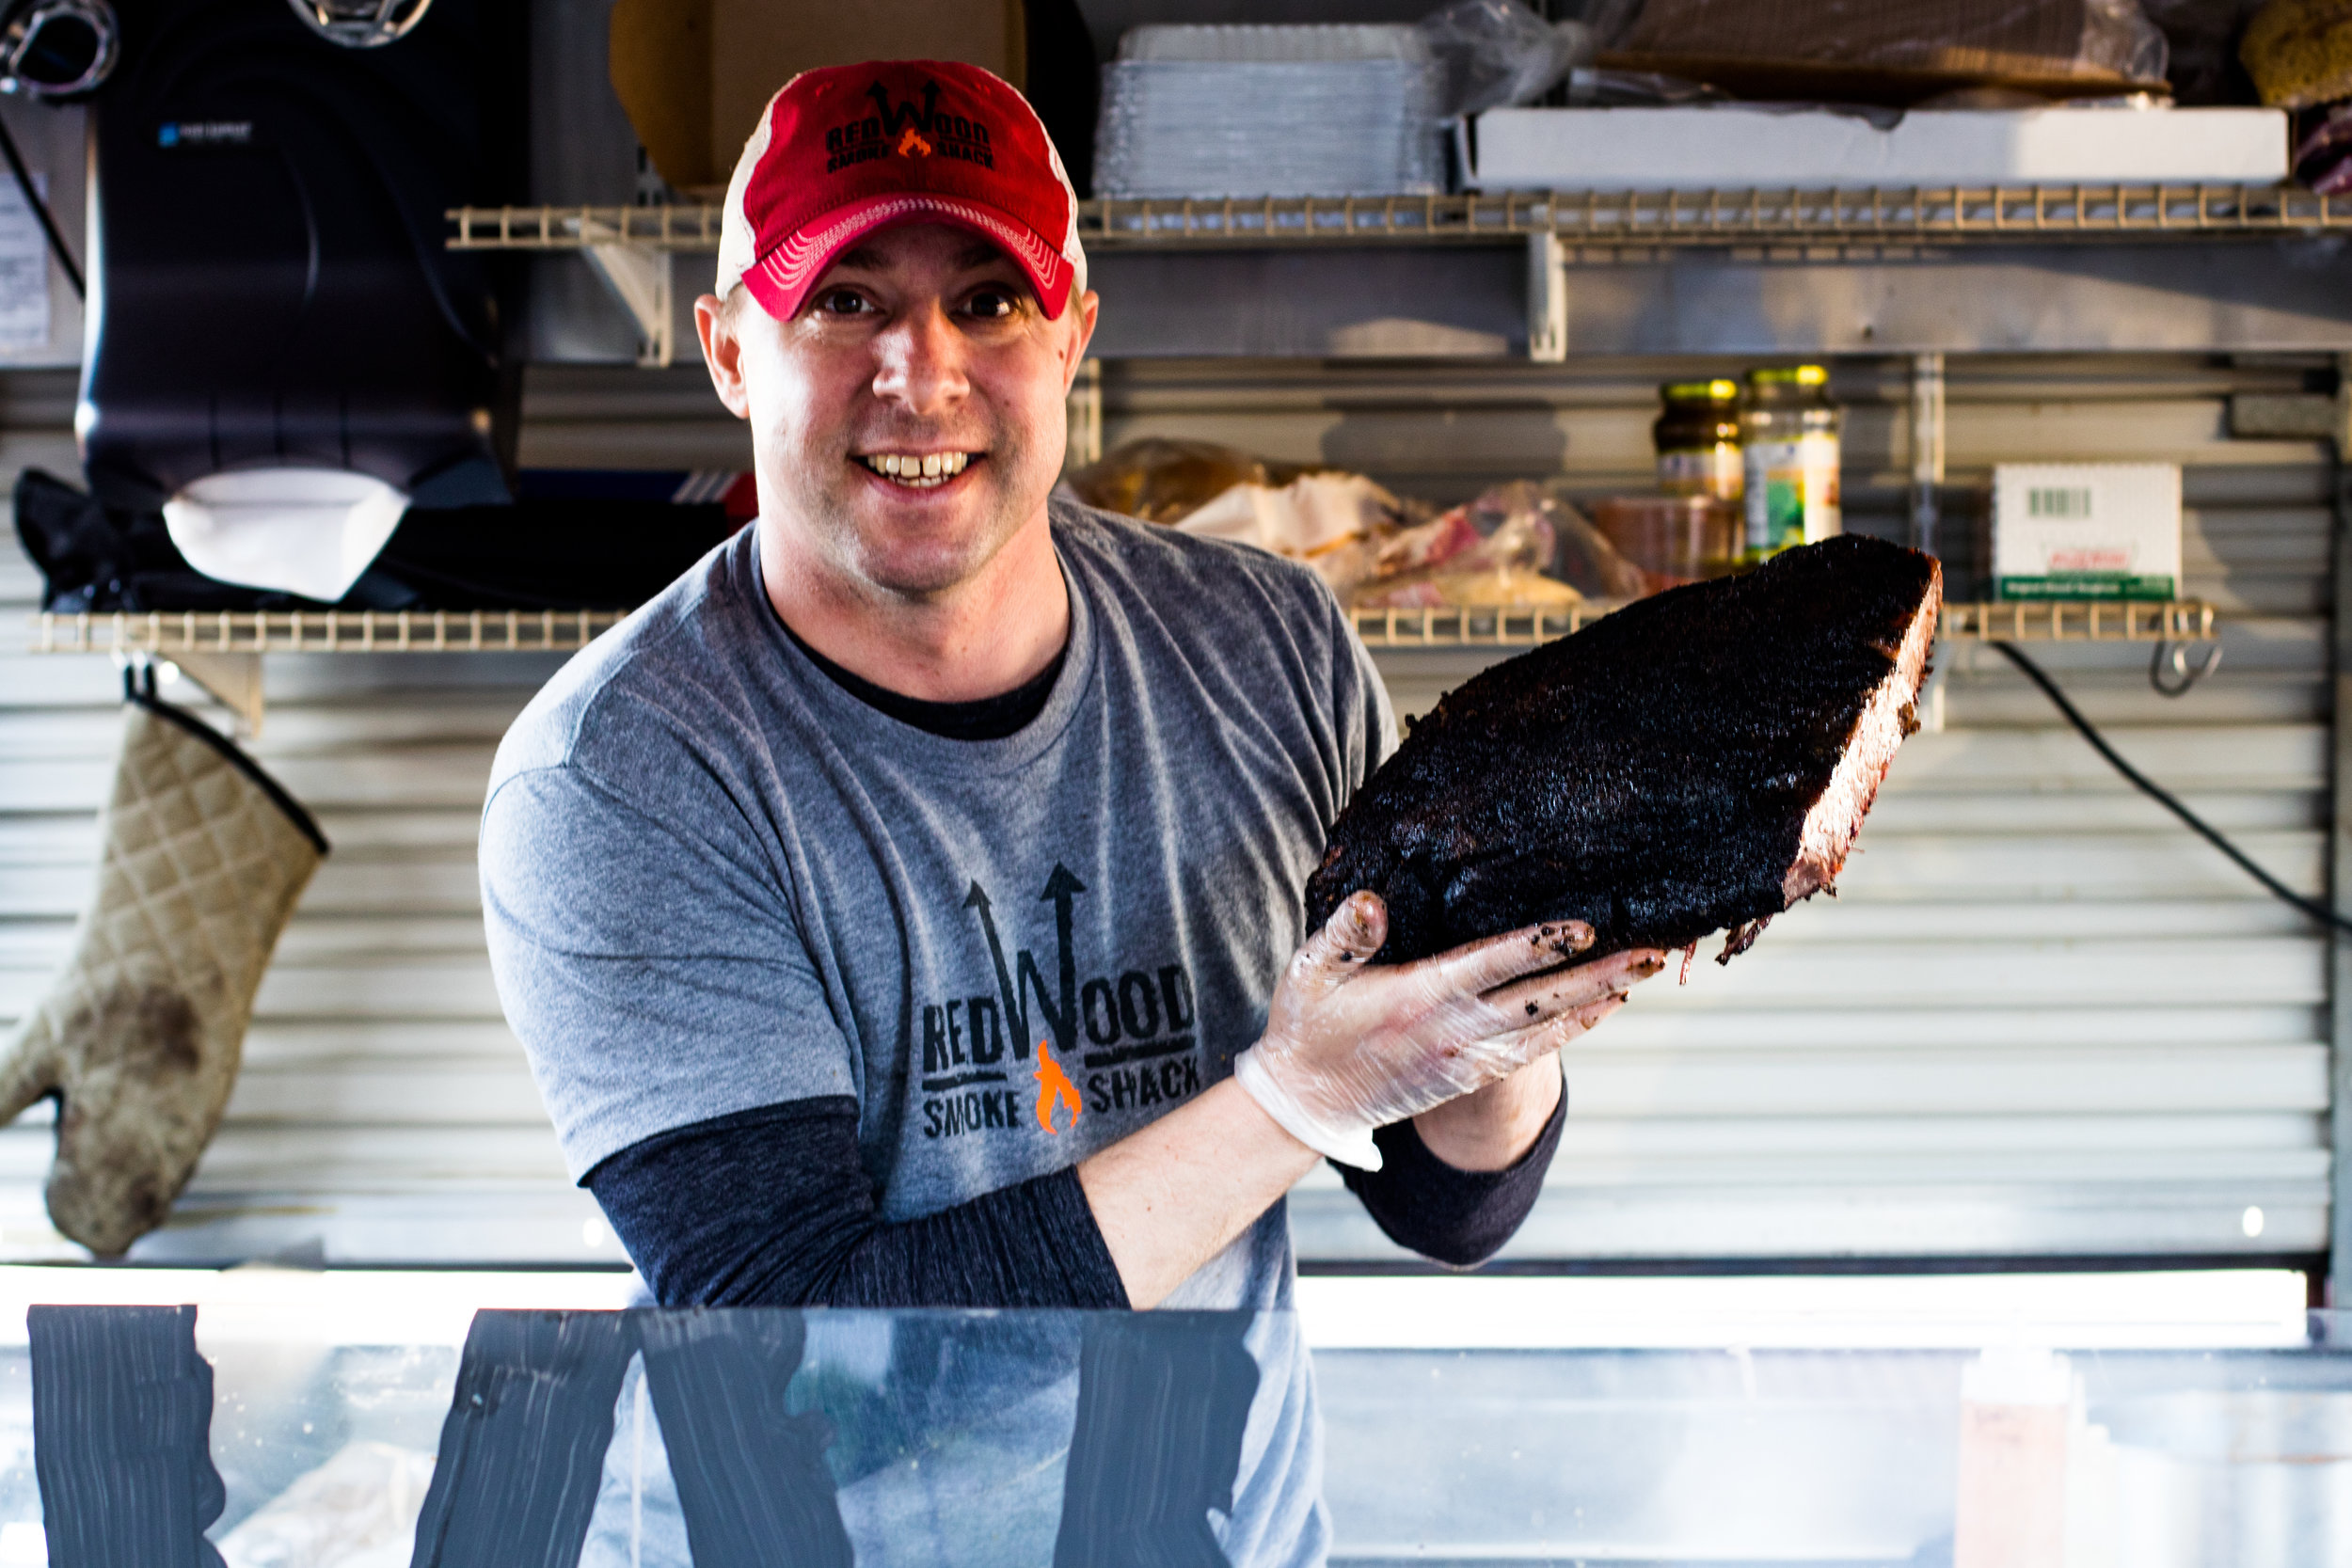 Pit Master, The Man Behind the Meat (Probably Tired) - BOB